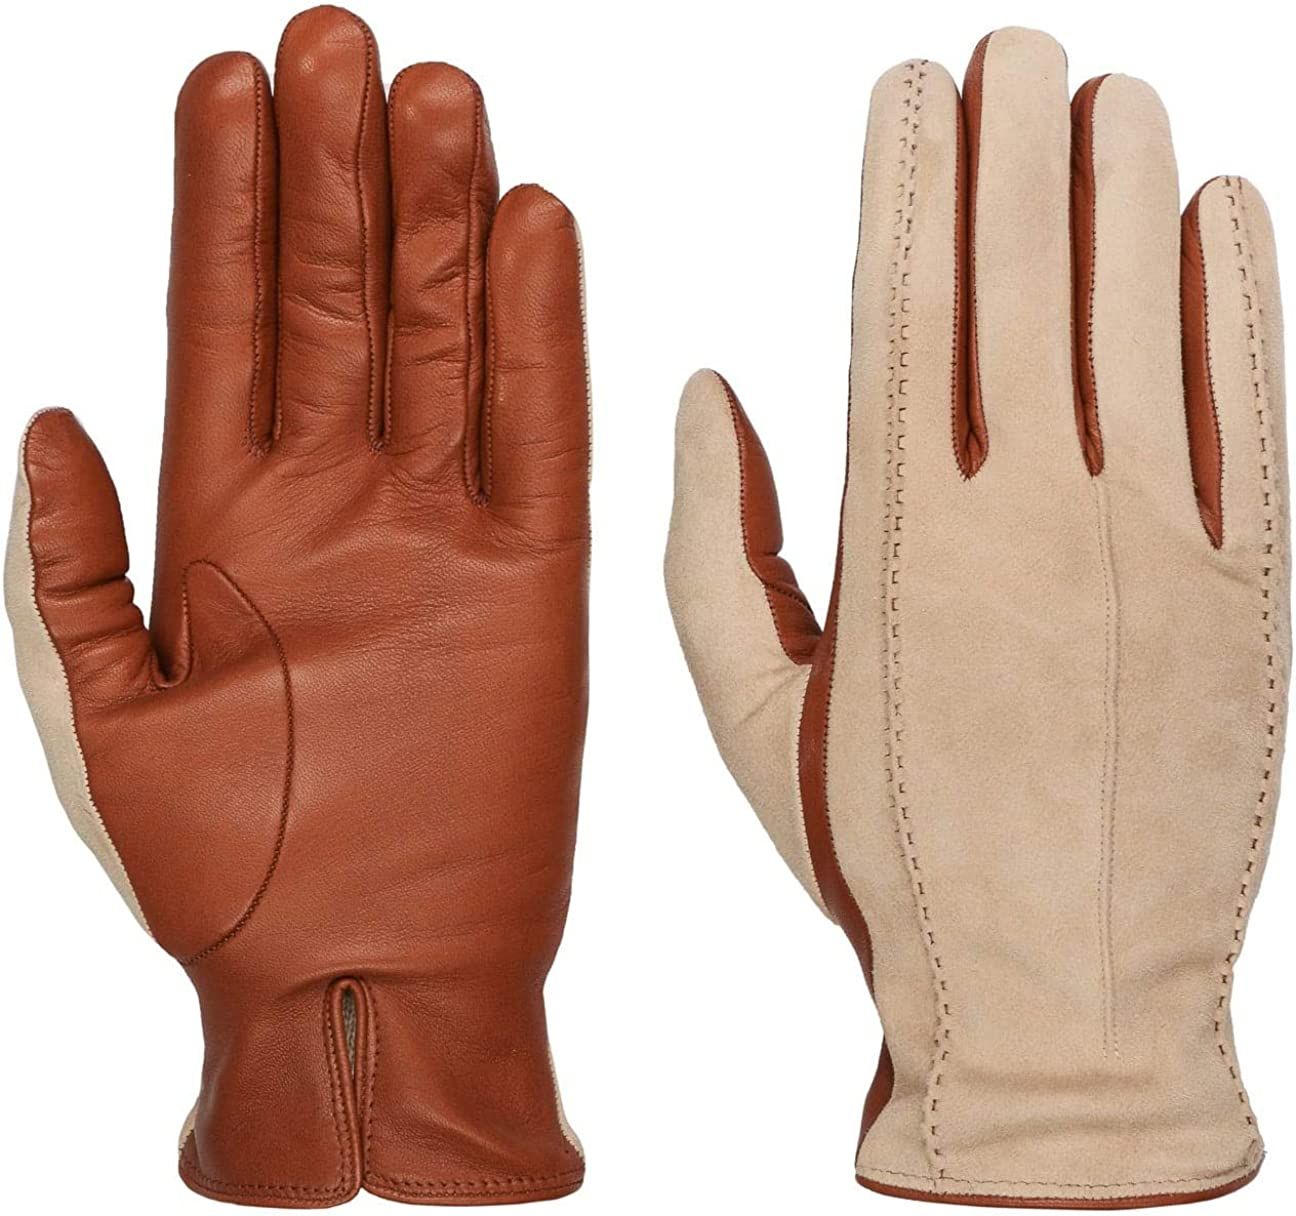 Caridei Classic Twotone Women´s Gloves Women - Made in Italy